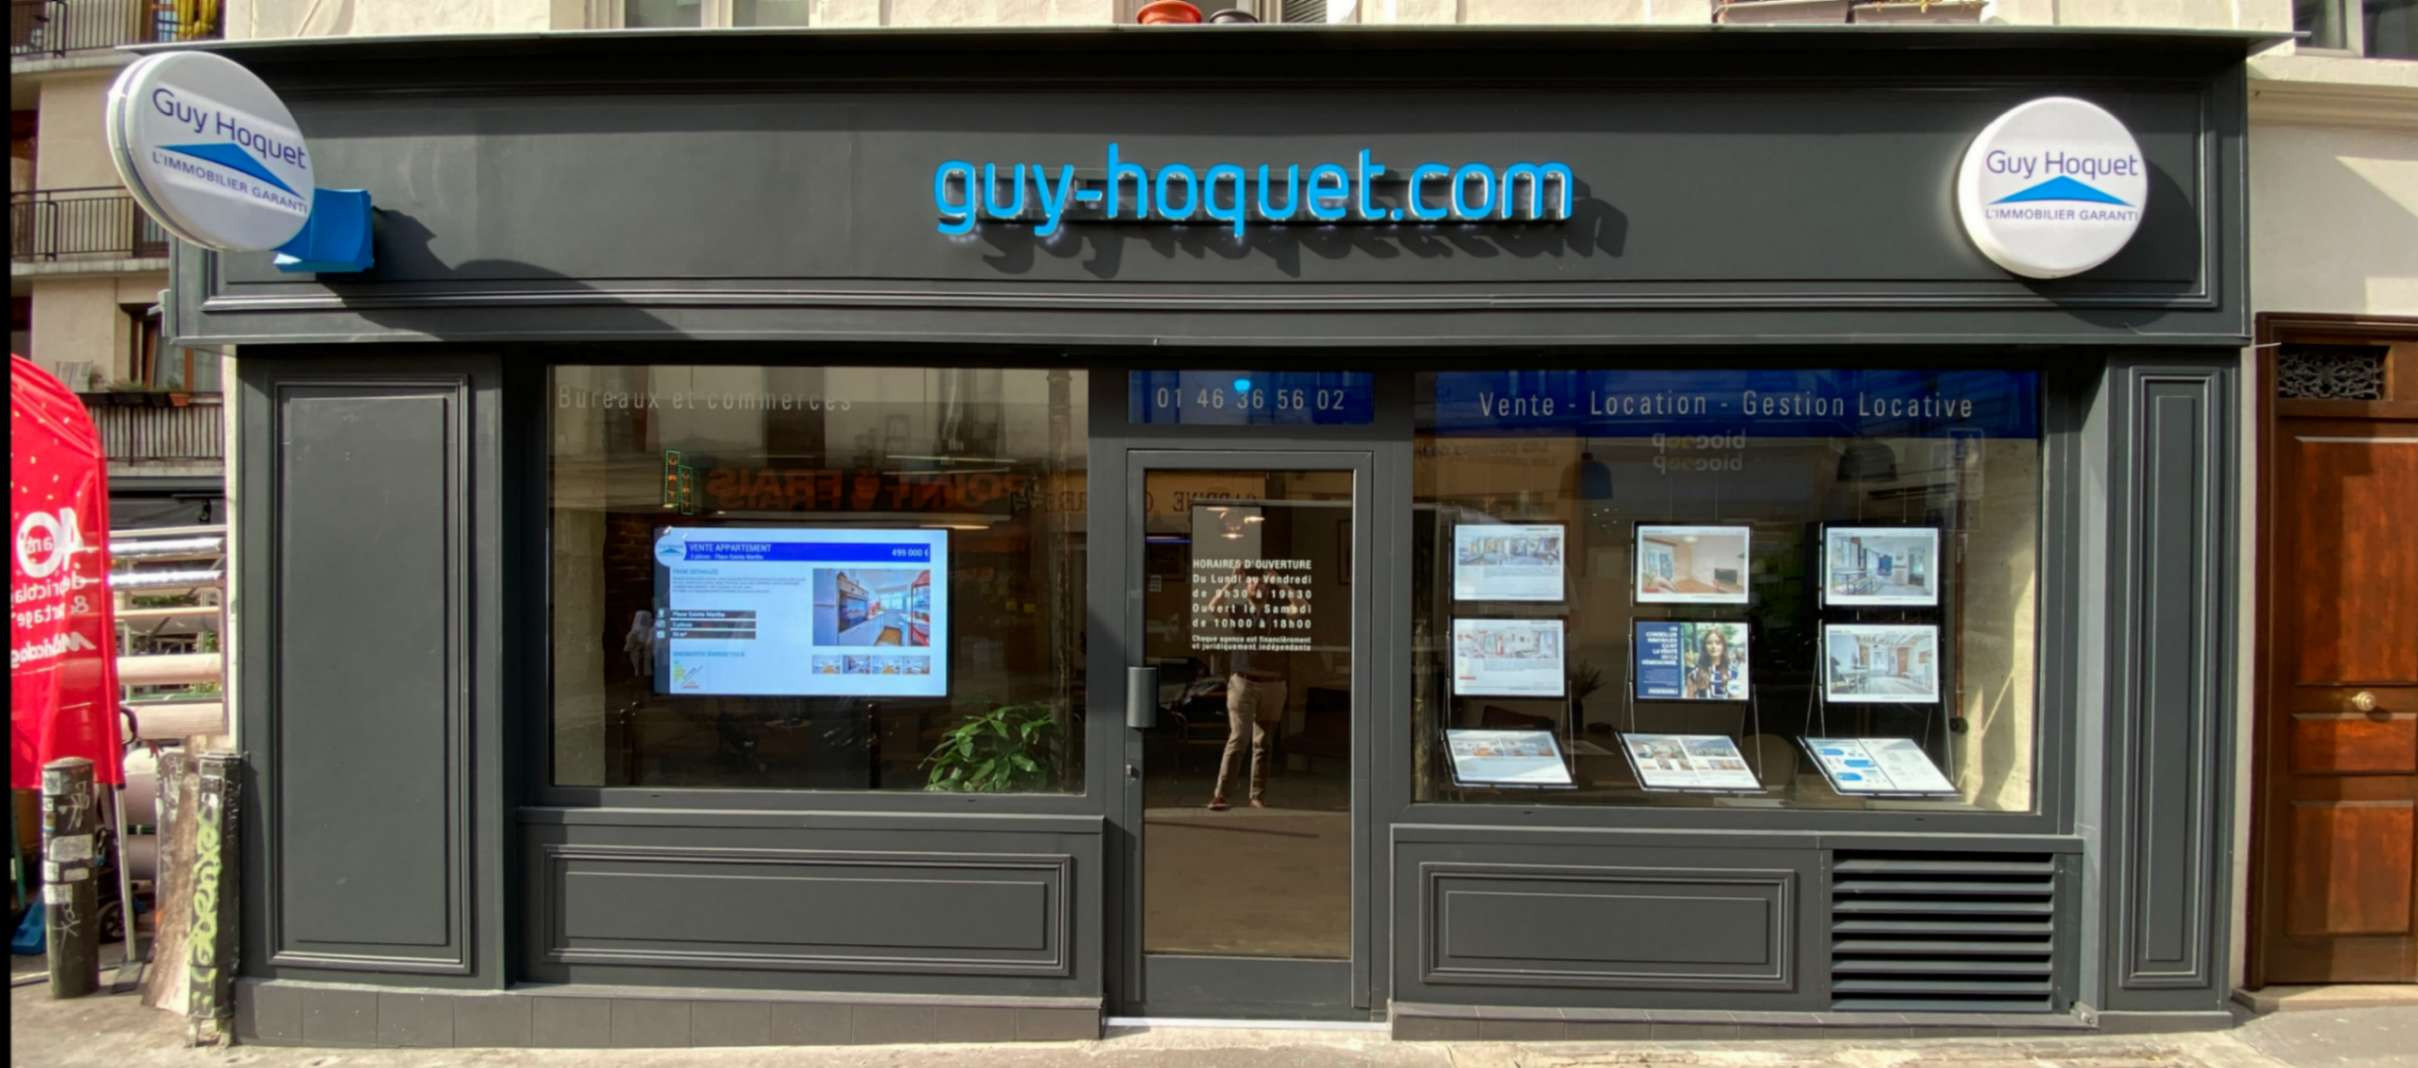 Agence Guy Hoquet PARIS 20 MENILMONTANT